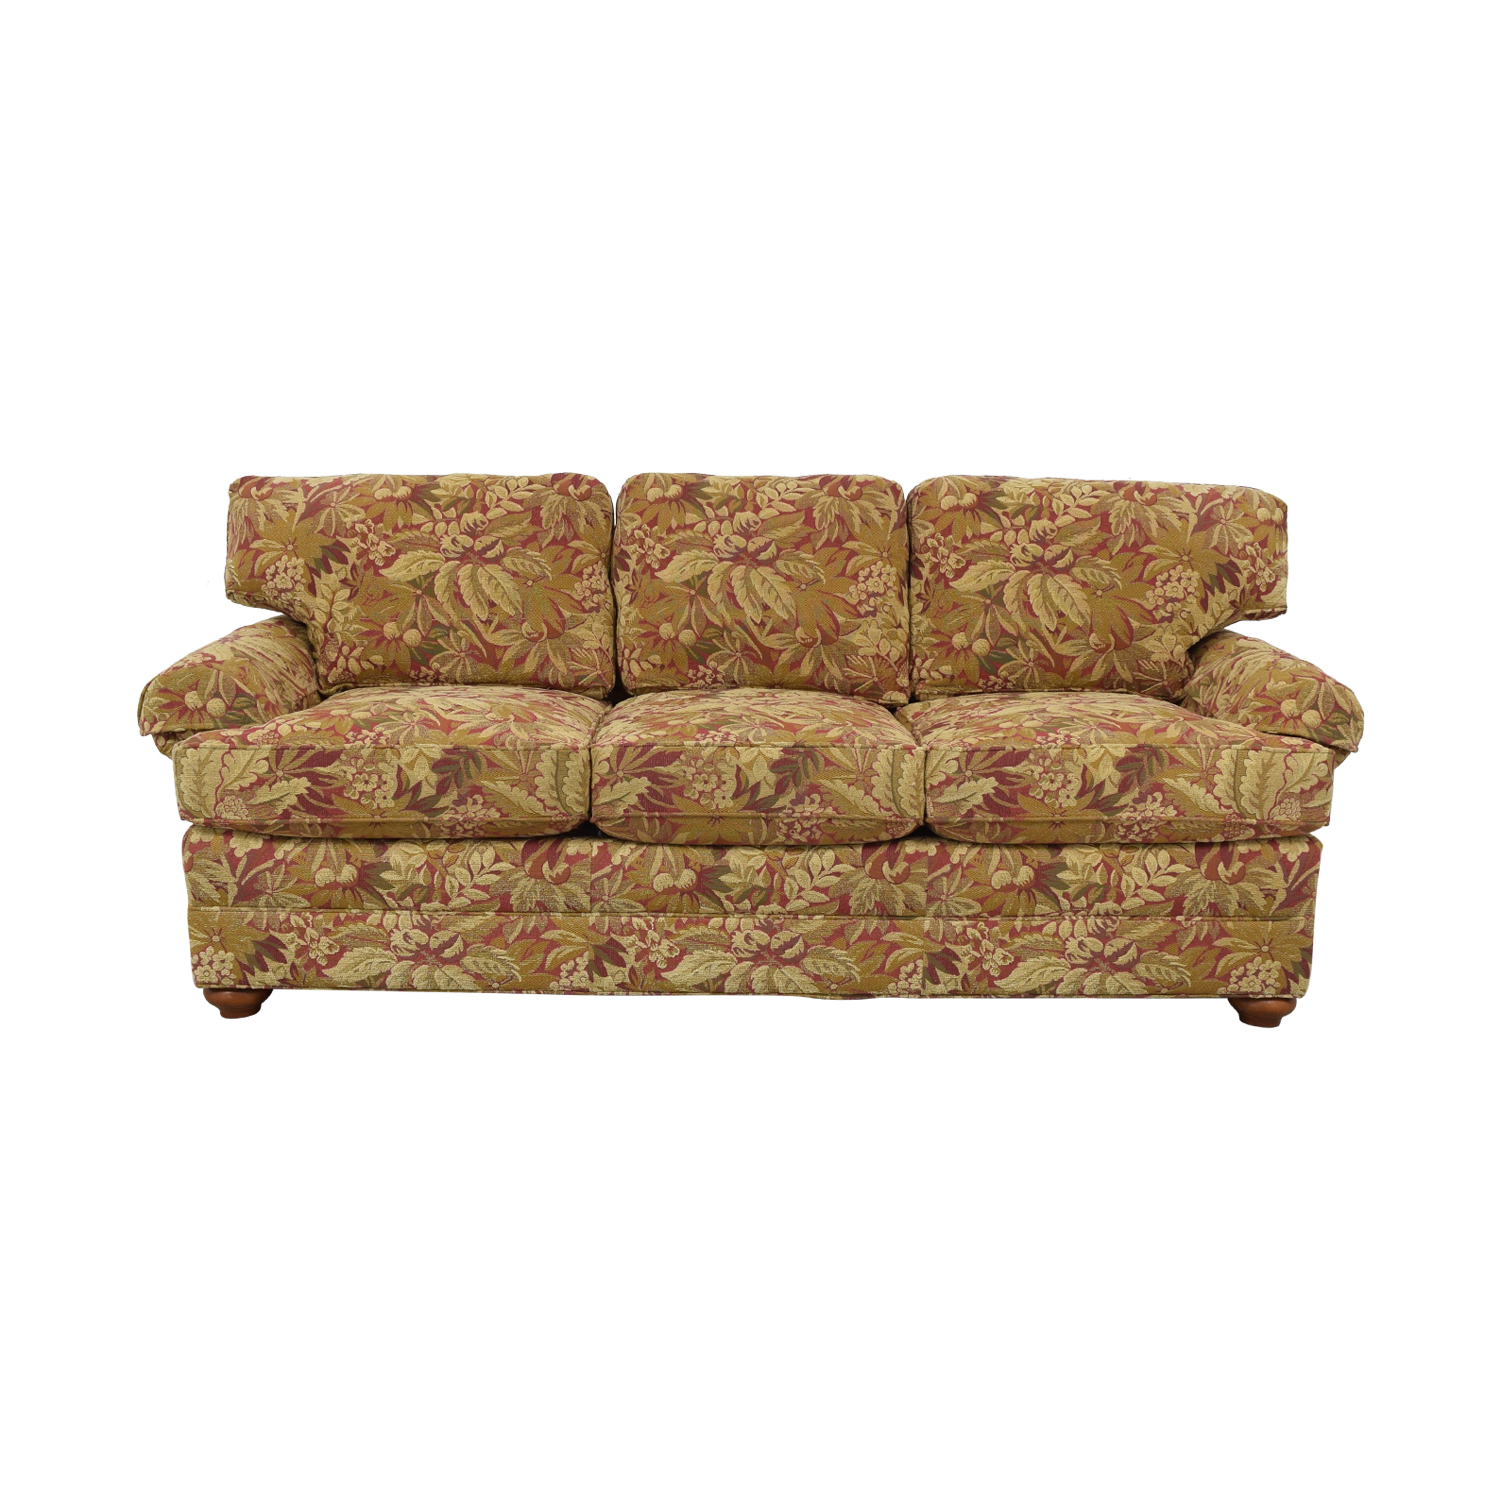 buy Greenbaum Interiors Greenbaum Interiors Patterned Three Seat Sofa online